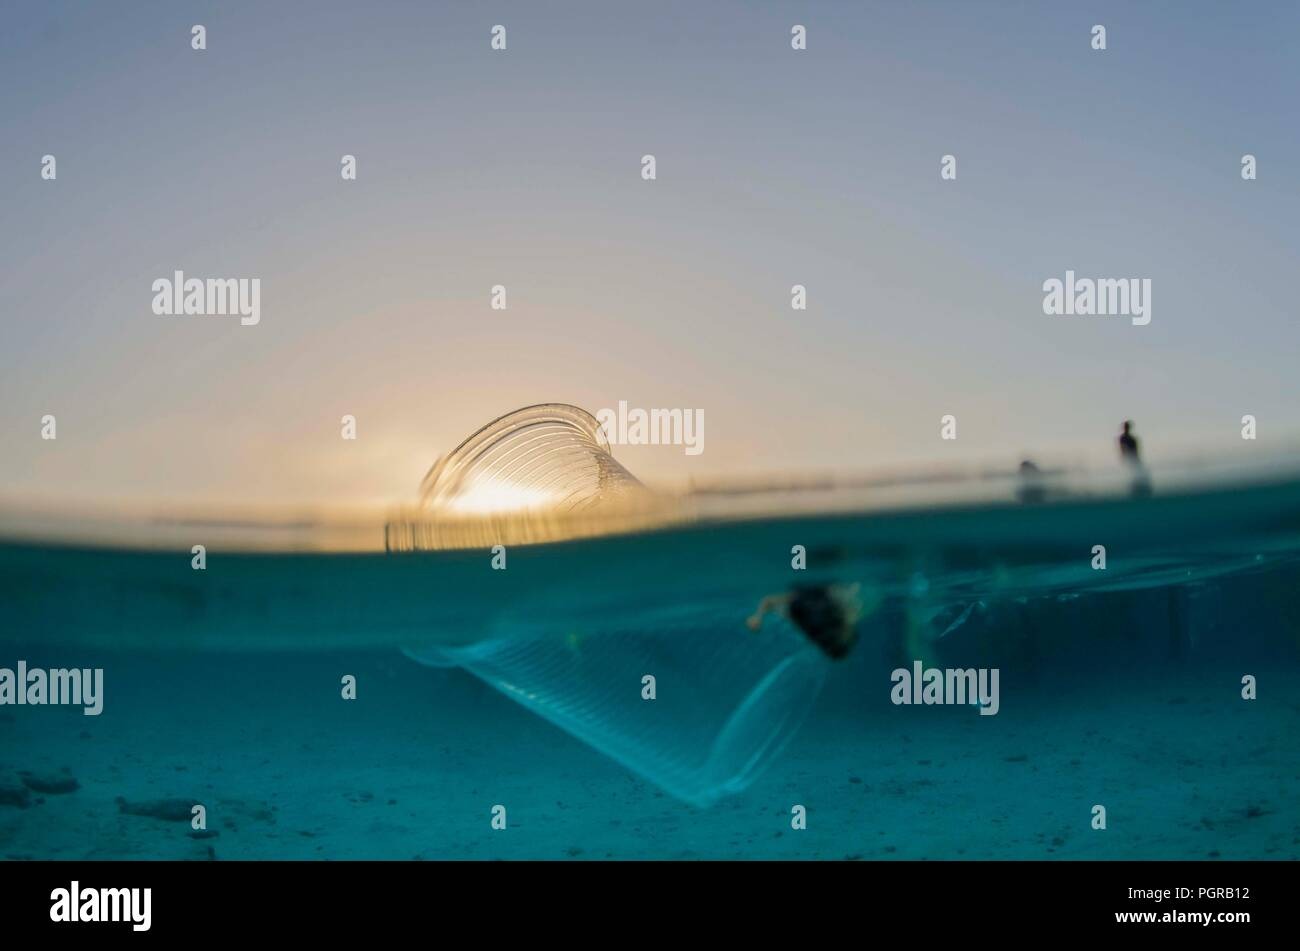 Split shot of a plastic cup floating on the surface of the ocean during sunset Stock Photo